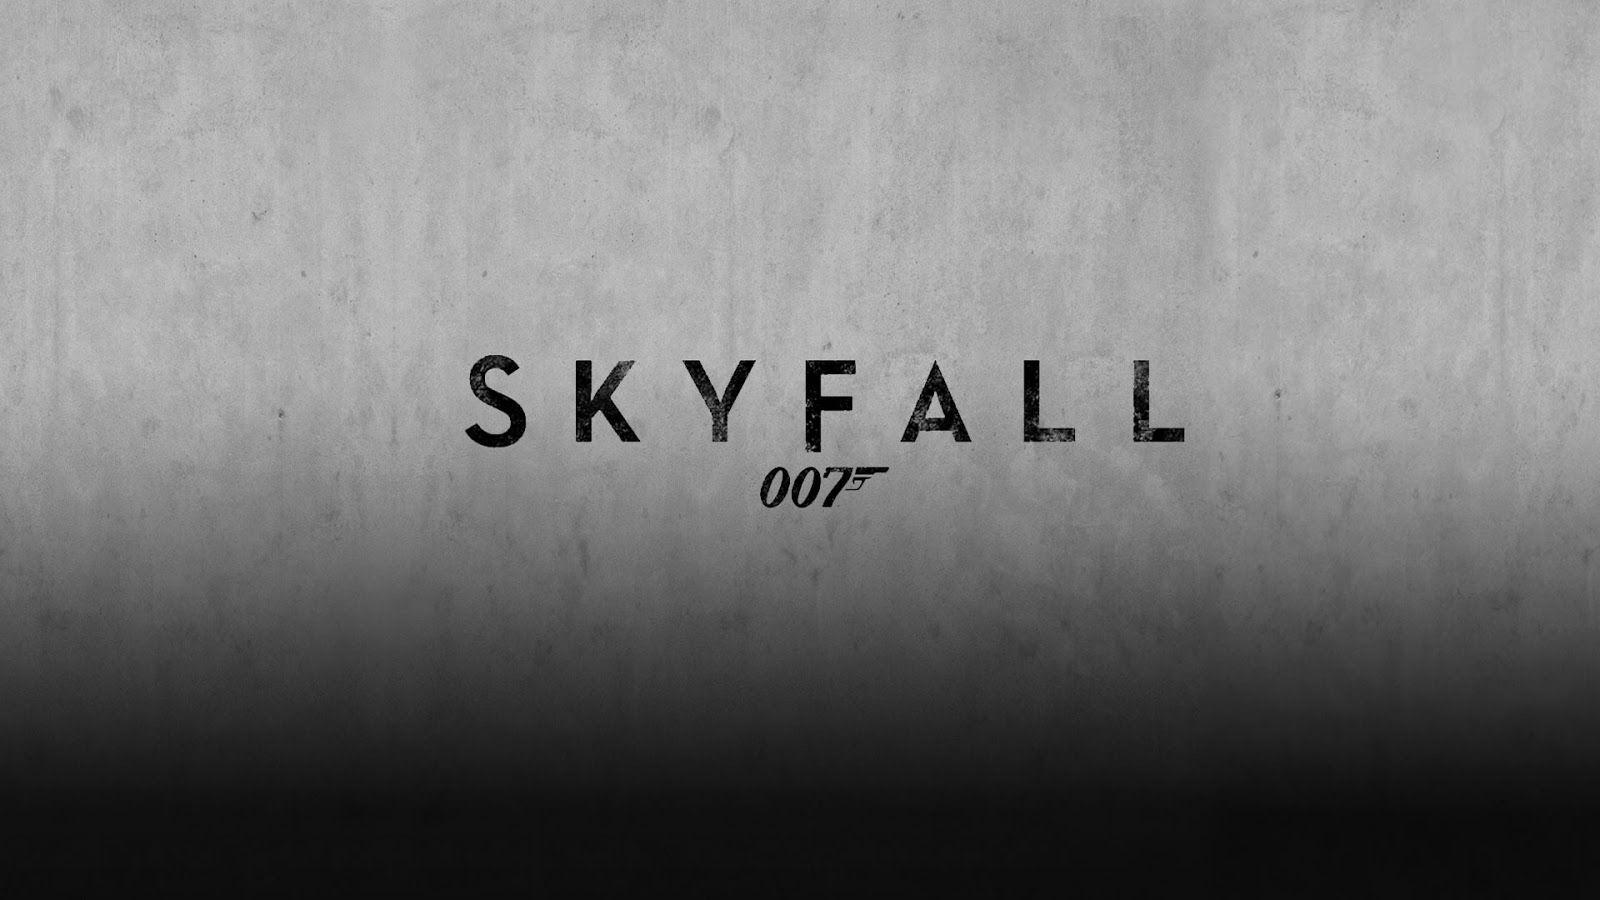 x The Illustrated James Bond Iphone wallpaper HD Wallpapers